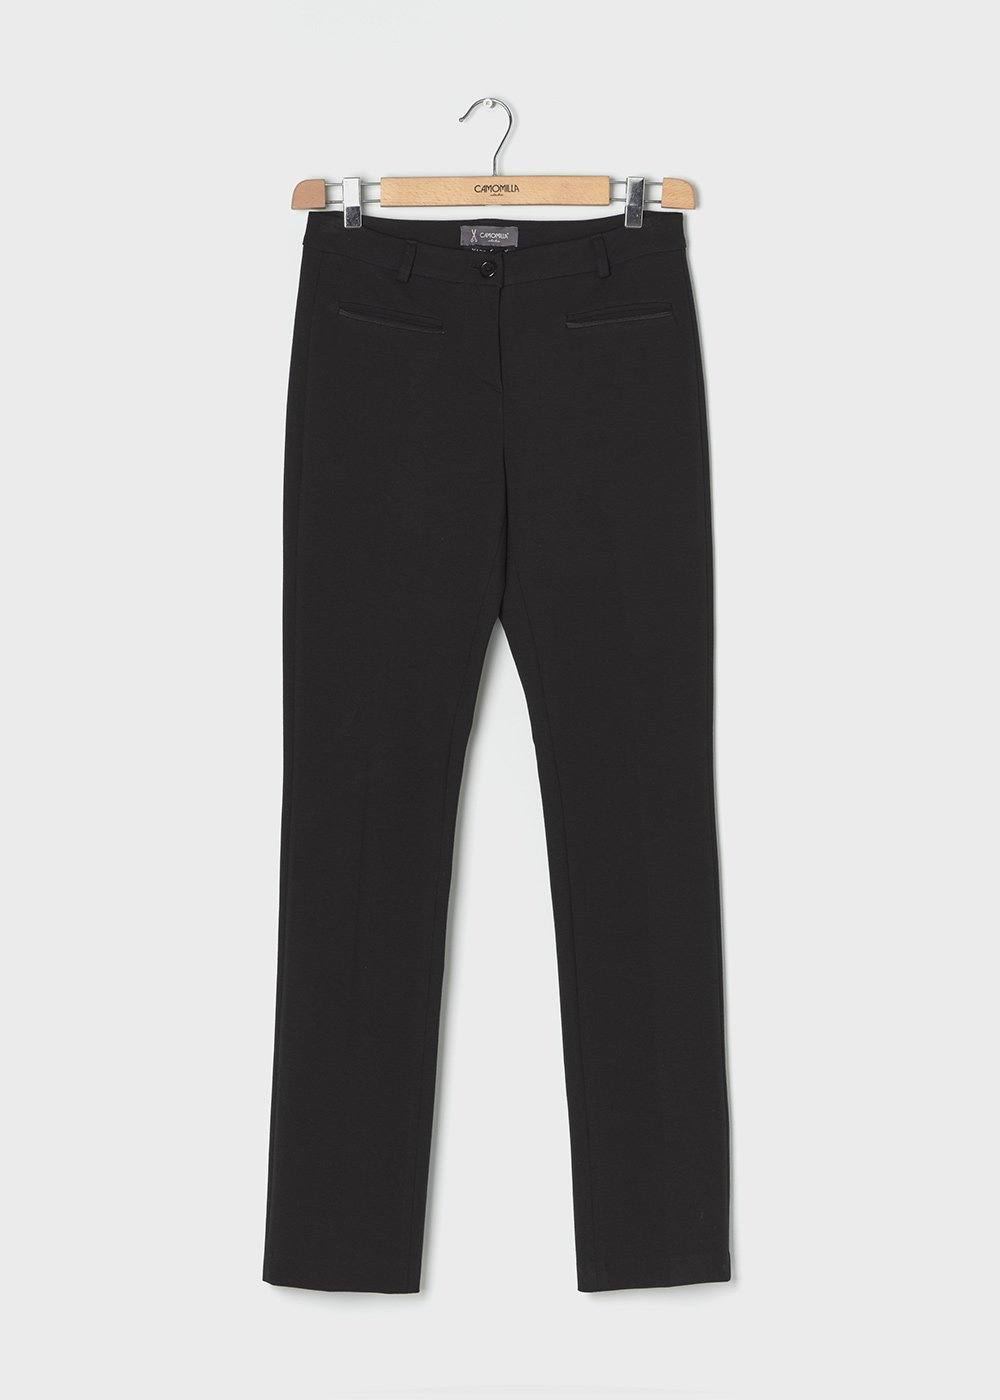 Miranda B trousers in milano stitch